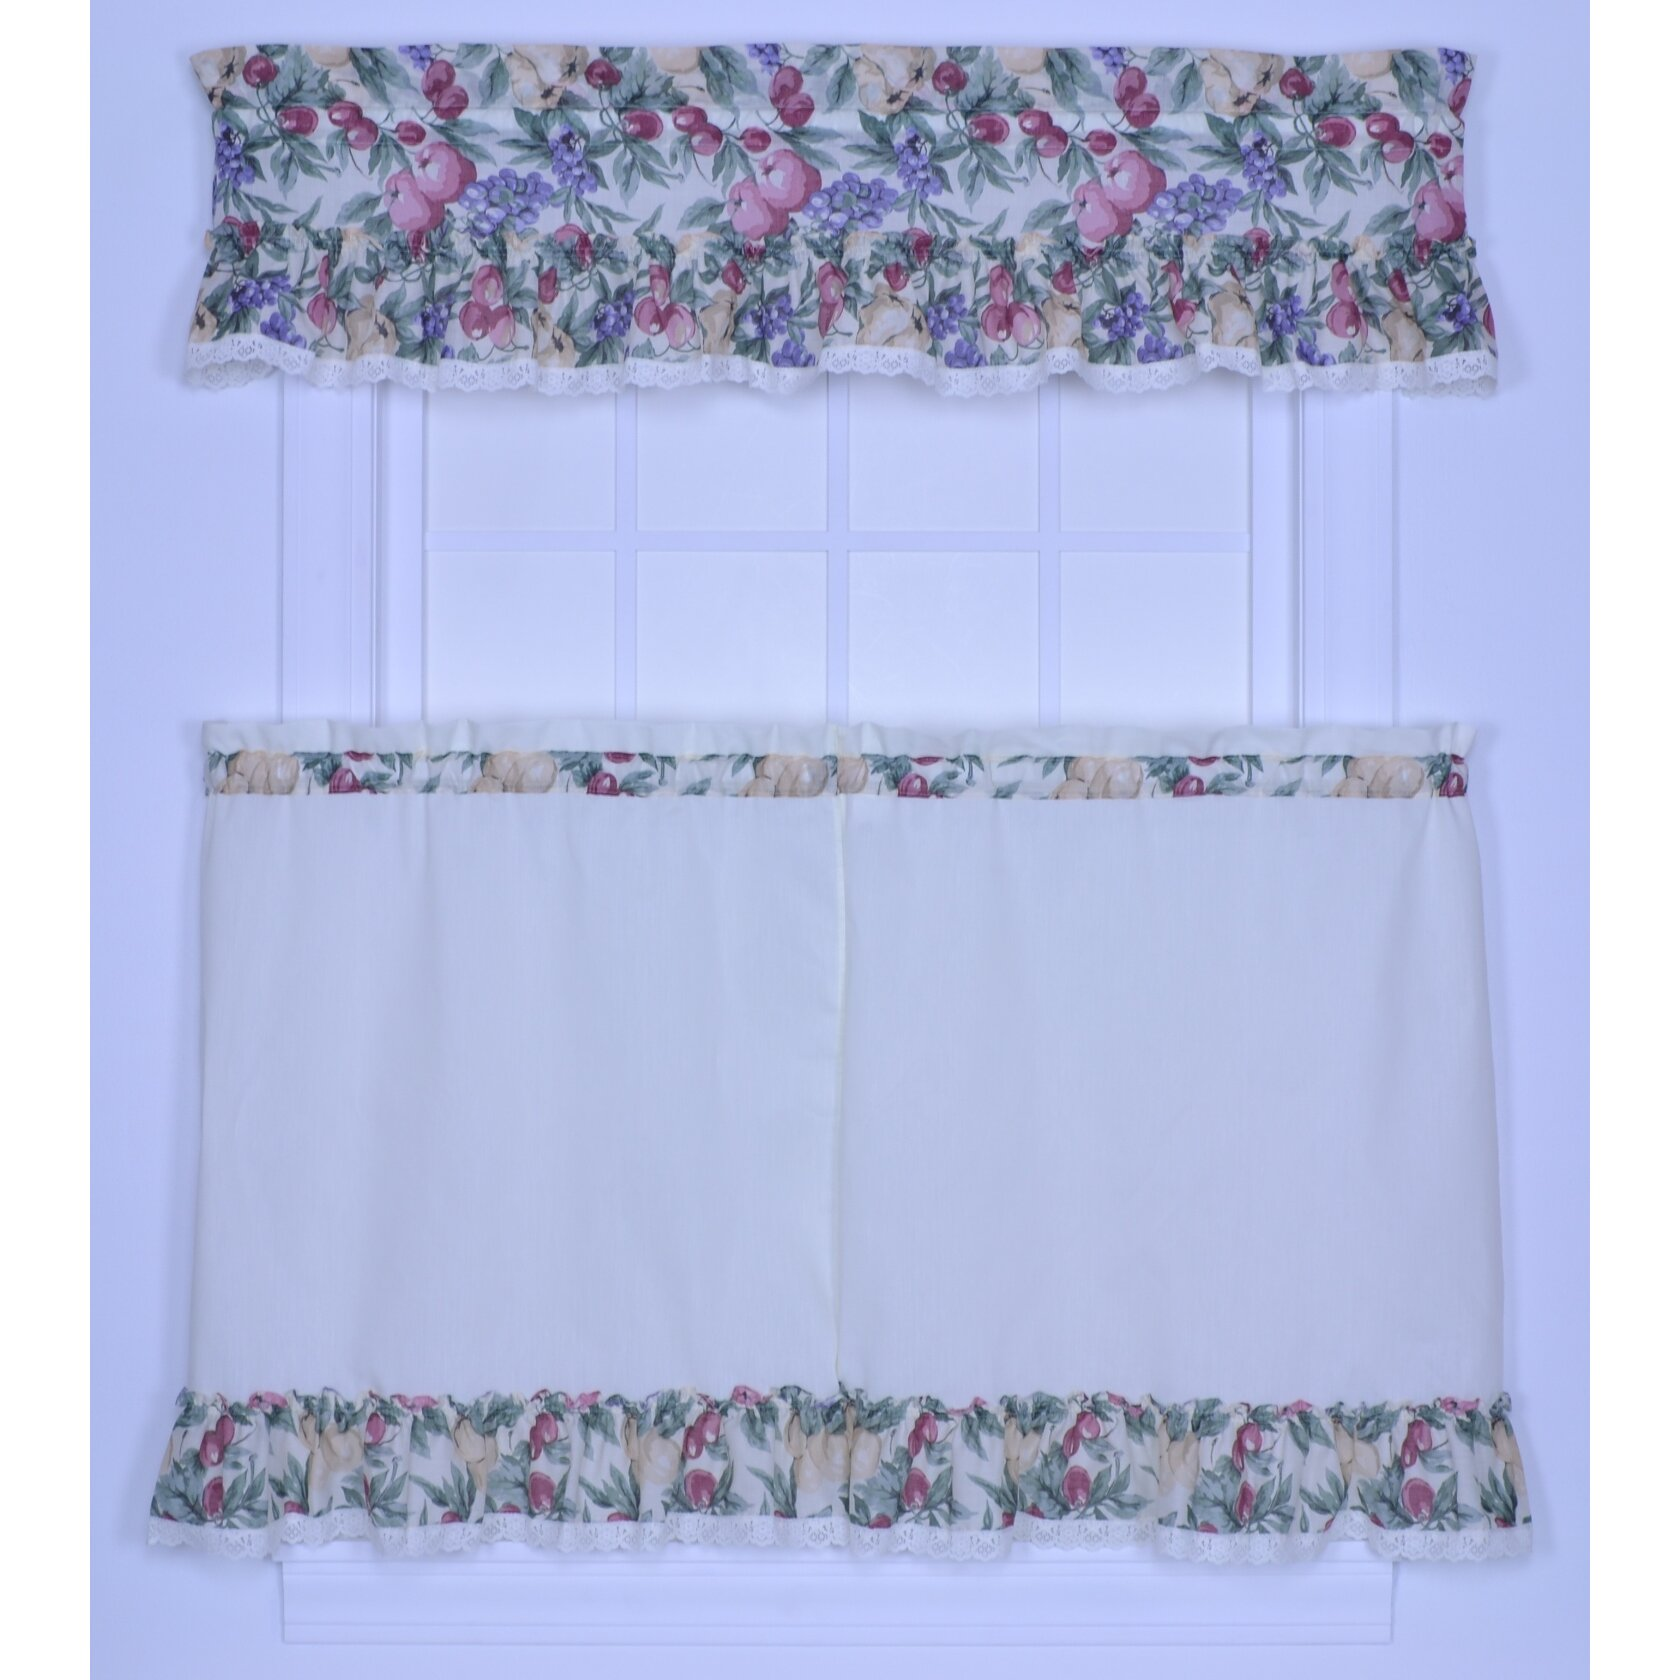 Ellis Curtain Kitchen Harvest Fruit Rod Pocket Ruffled 52